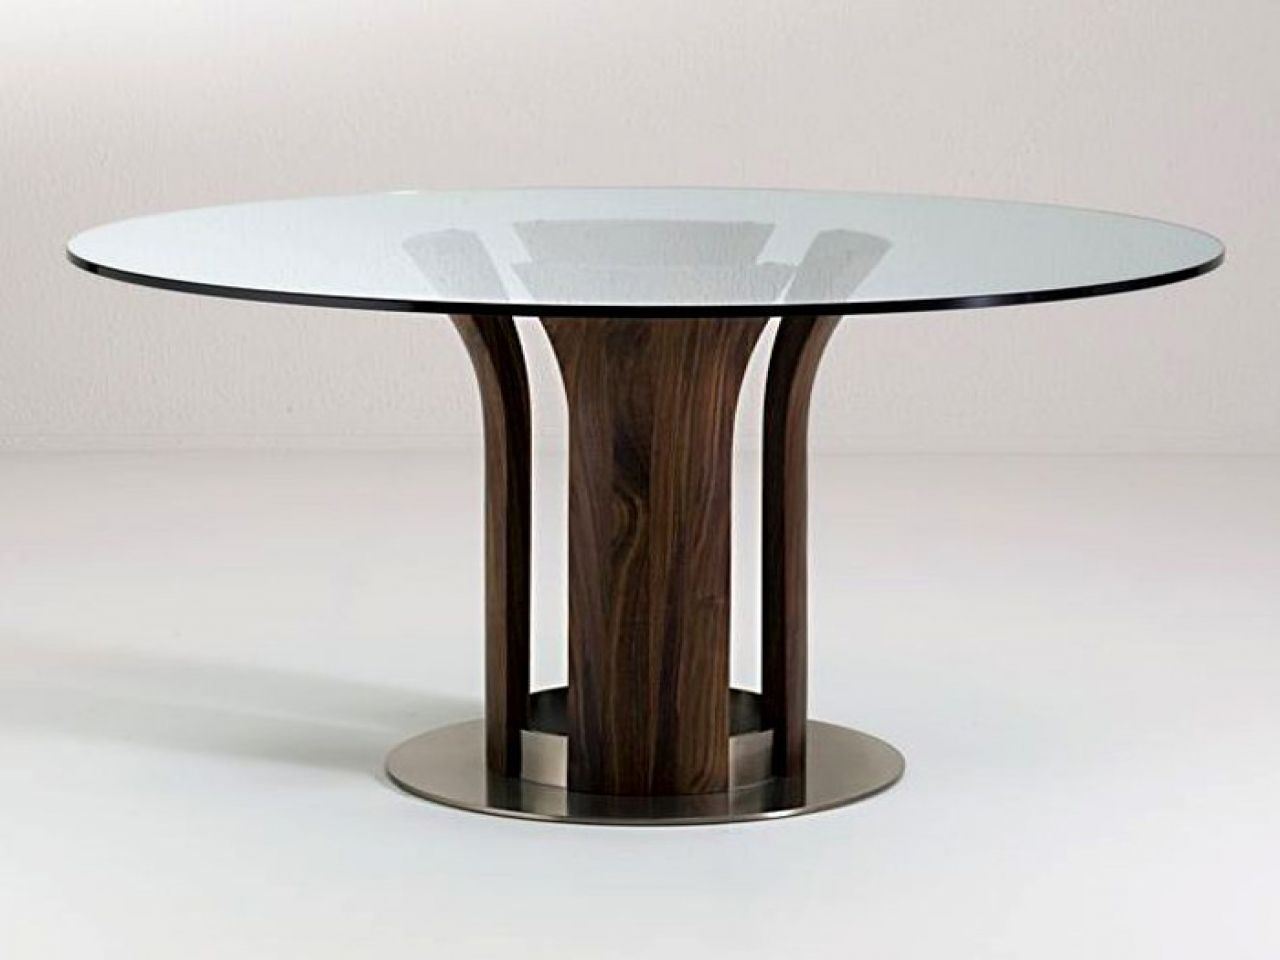 Glass Top Dining Room Sets Round Table Modern With Wooden Base